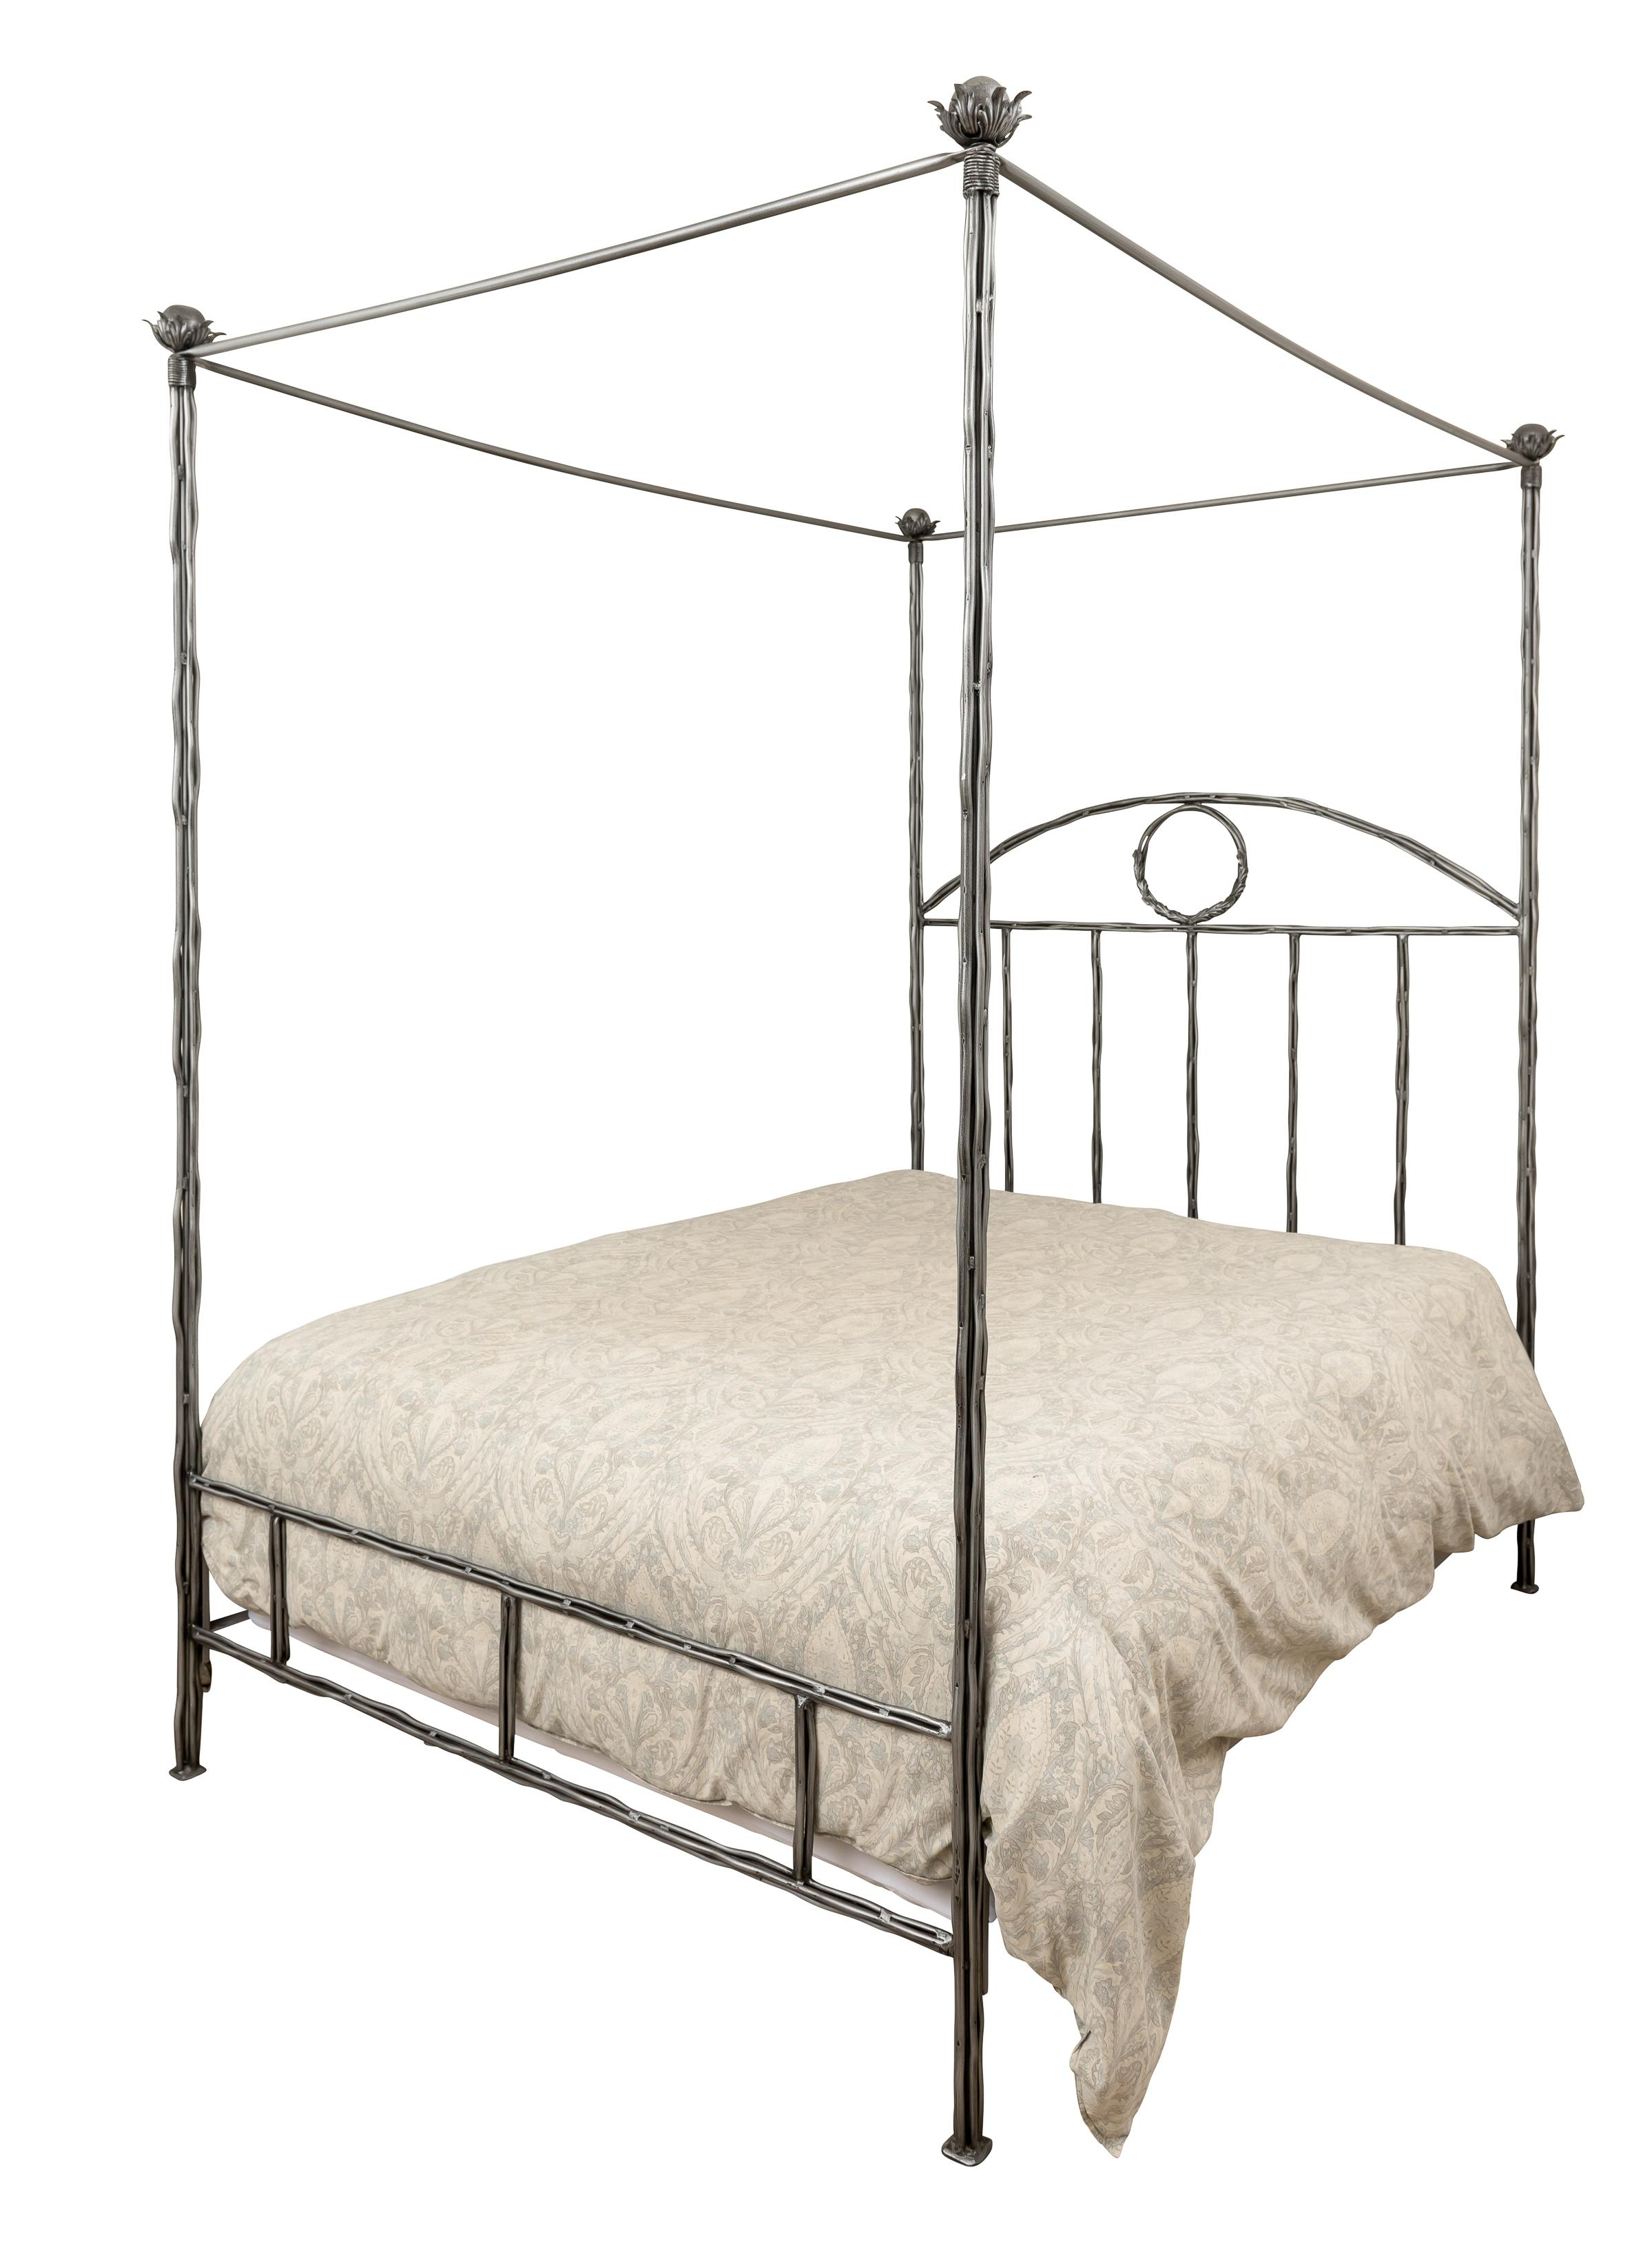 Romantic framed metal canopy queen bed chairish Short canopy bed